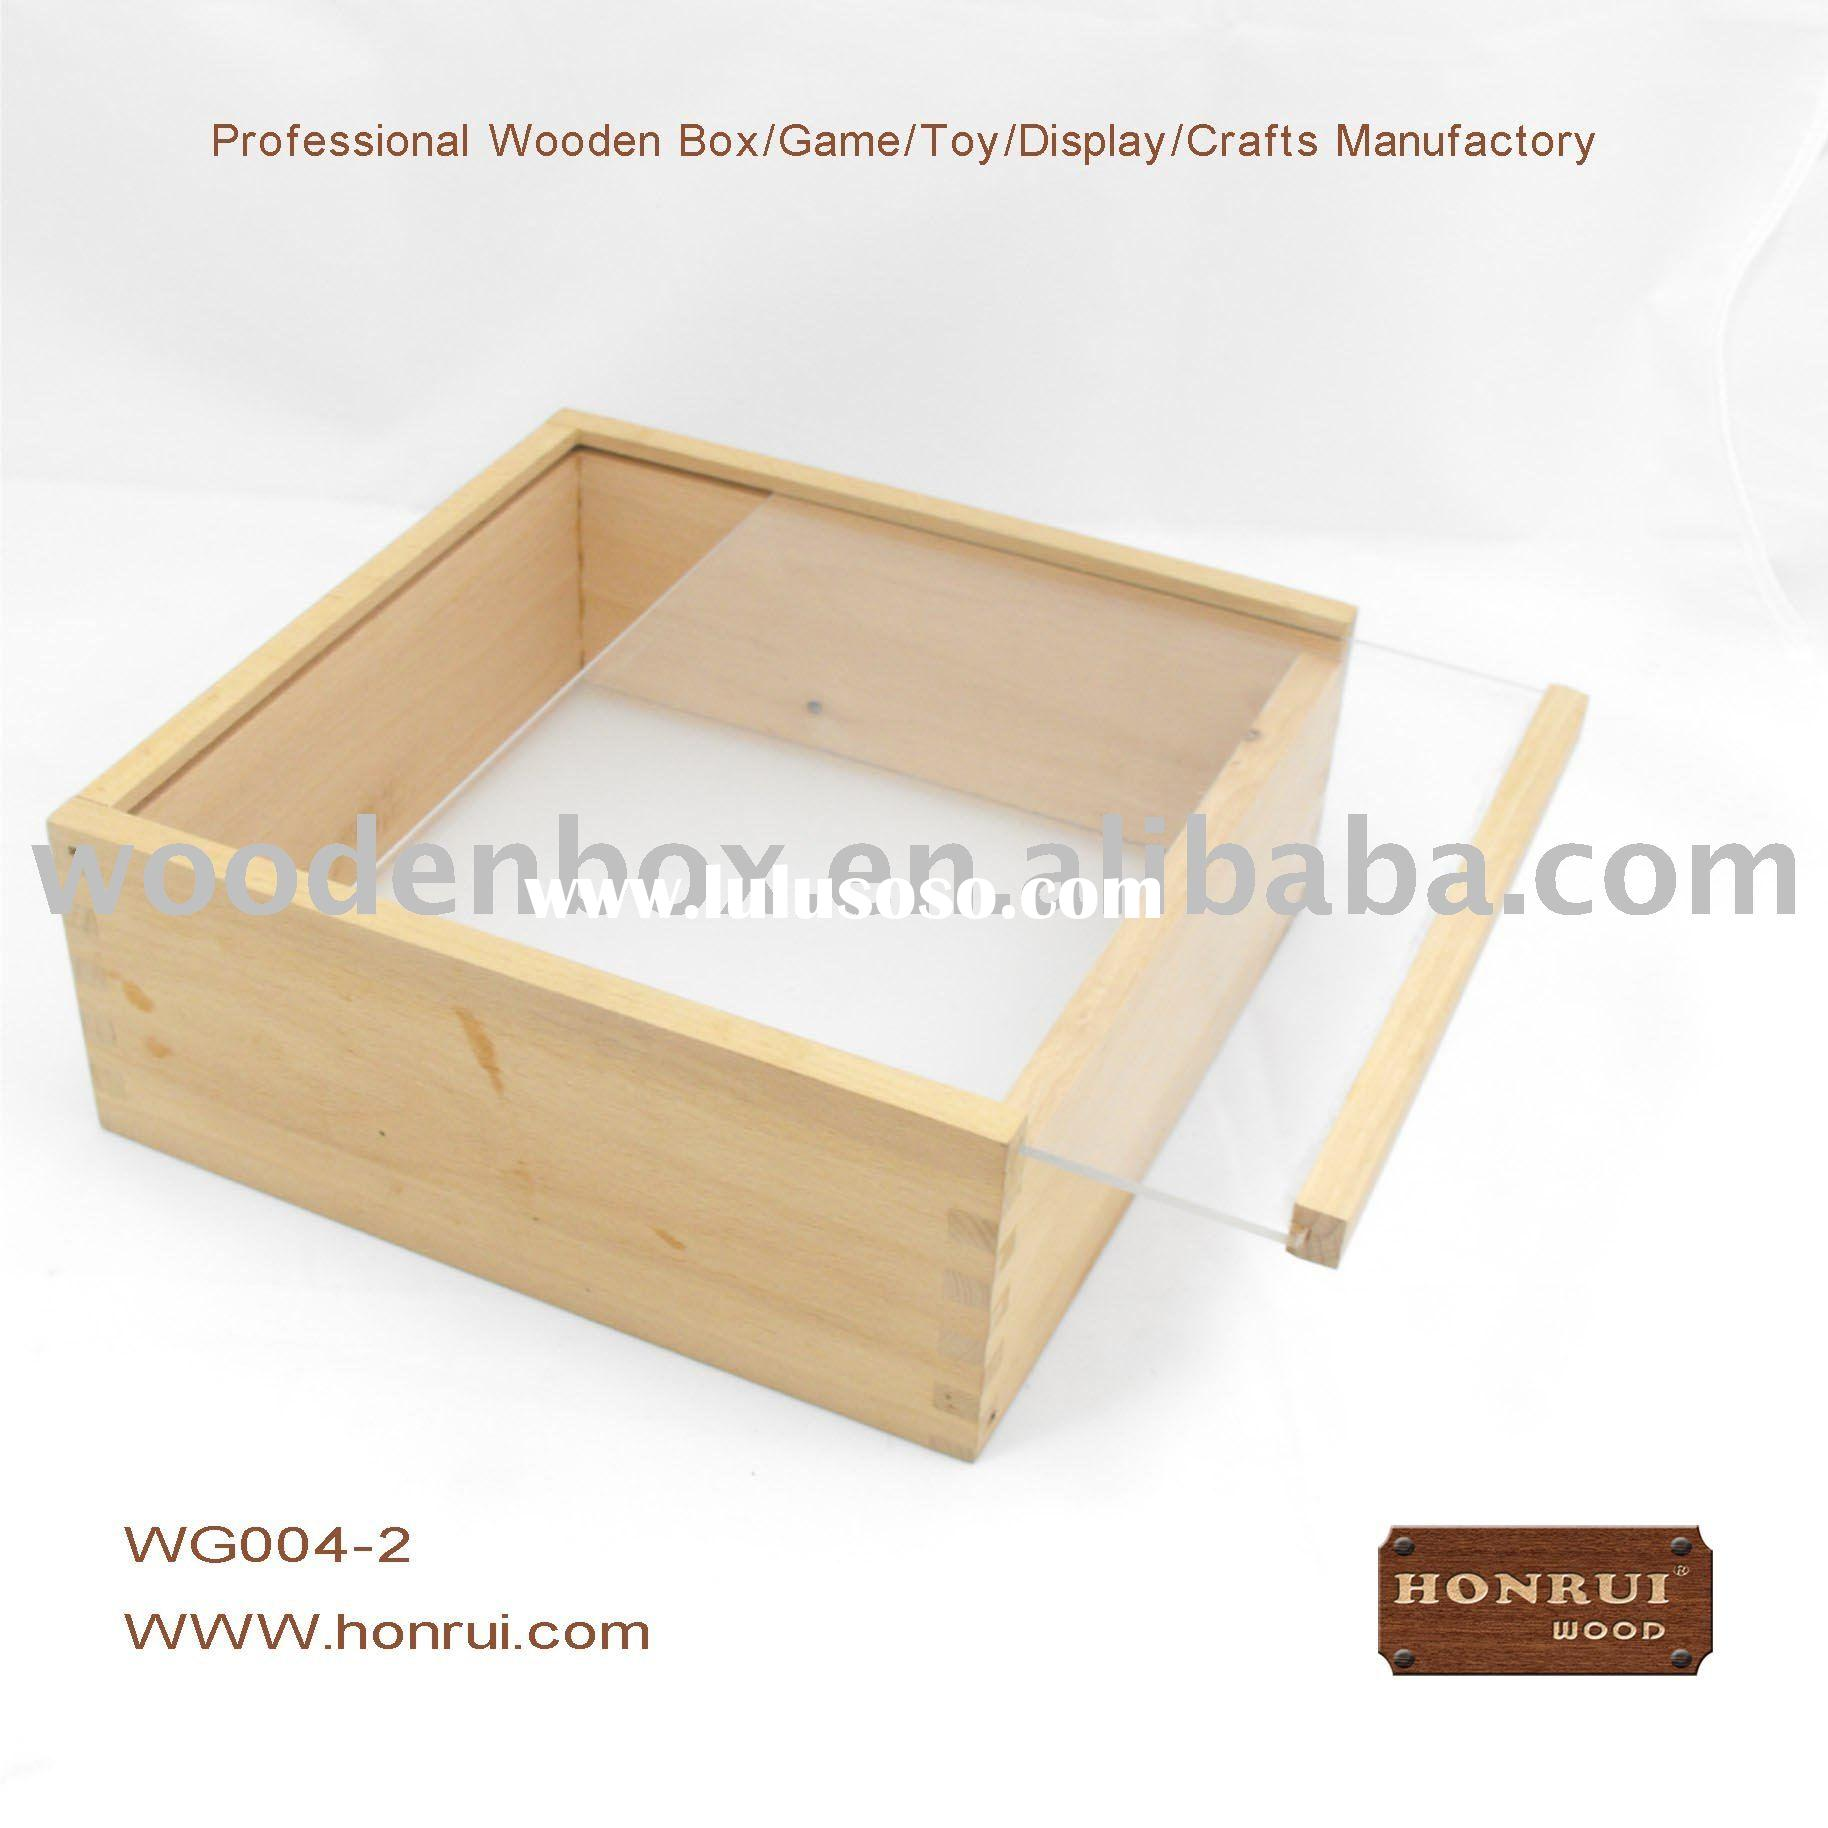 Making Wooden Boxes Plans Woodworking Furniture Styles - 1828x1828 ...